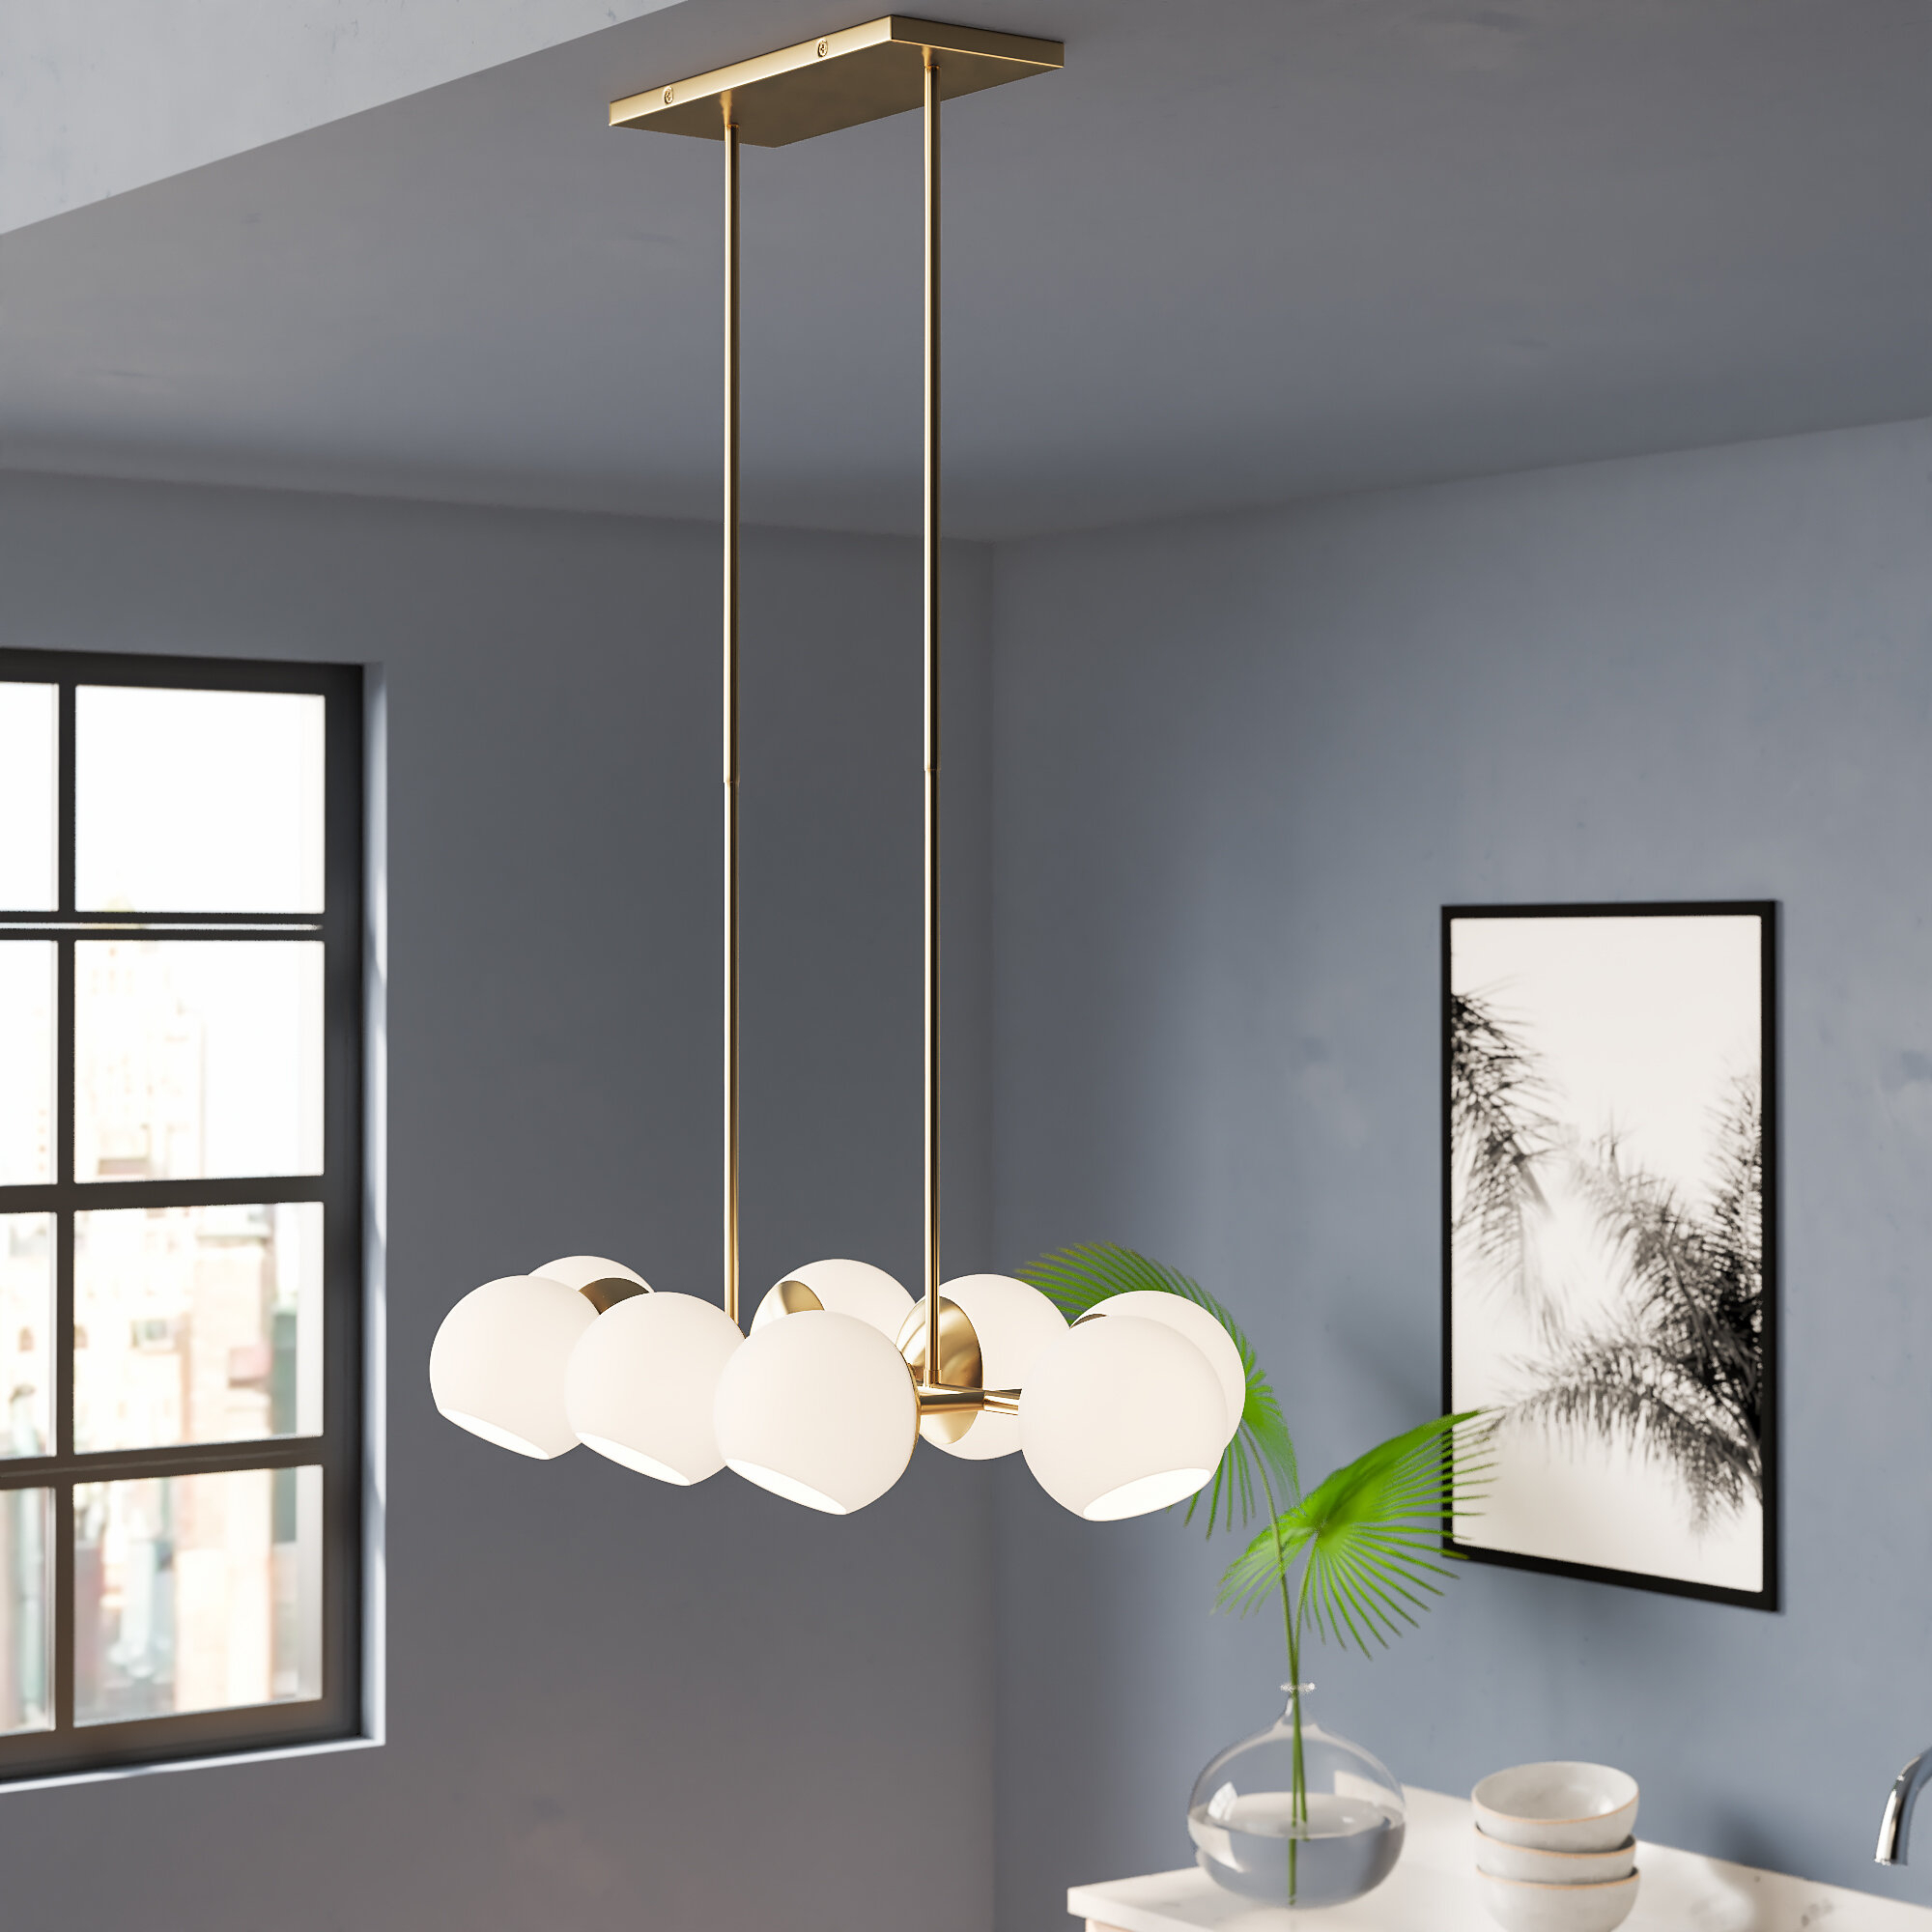 Ashley 8 Light Kitchen Island Linear Pendant Regarding Bautista 6 Light Kitchen Island Bulb Pendants (View 4 of 30)